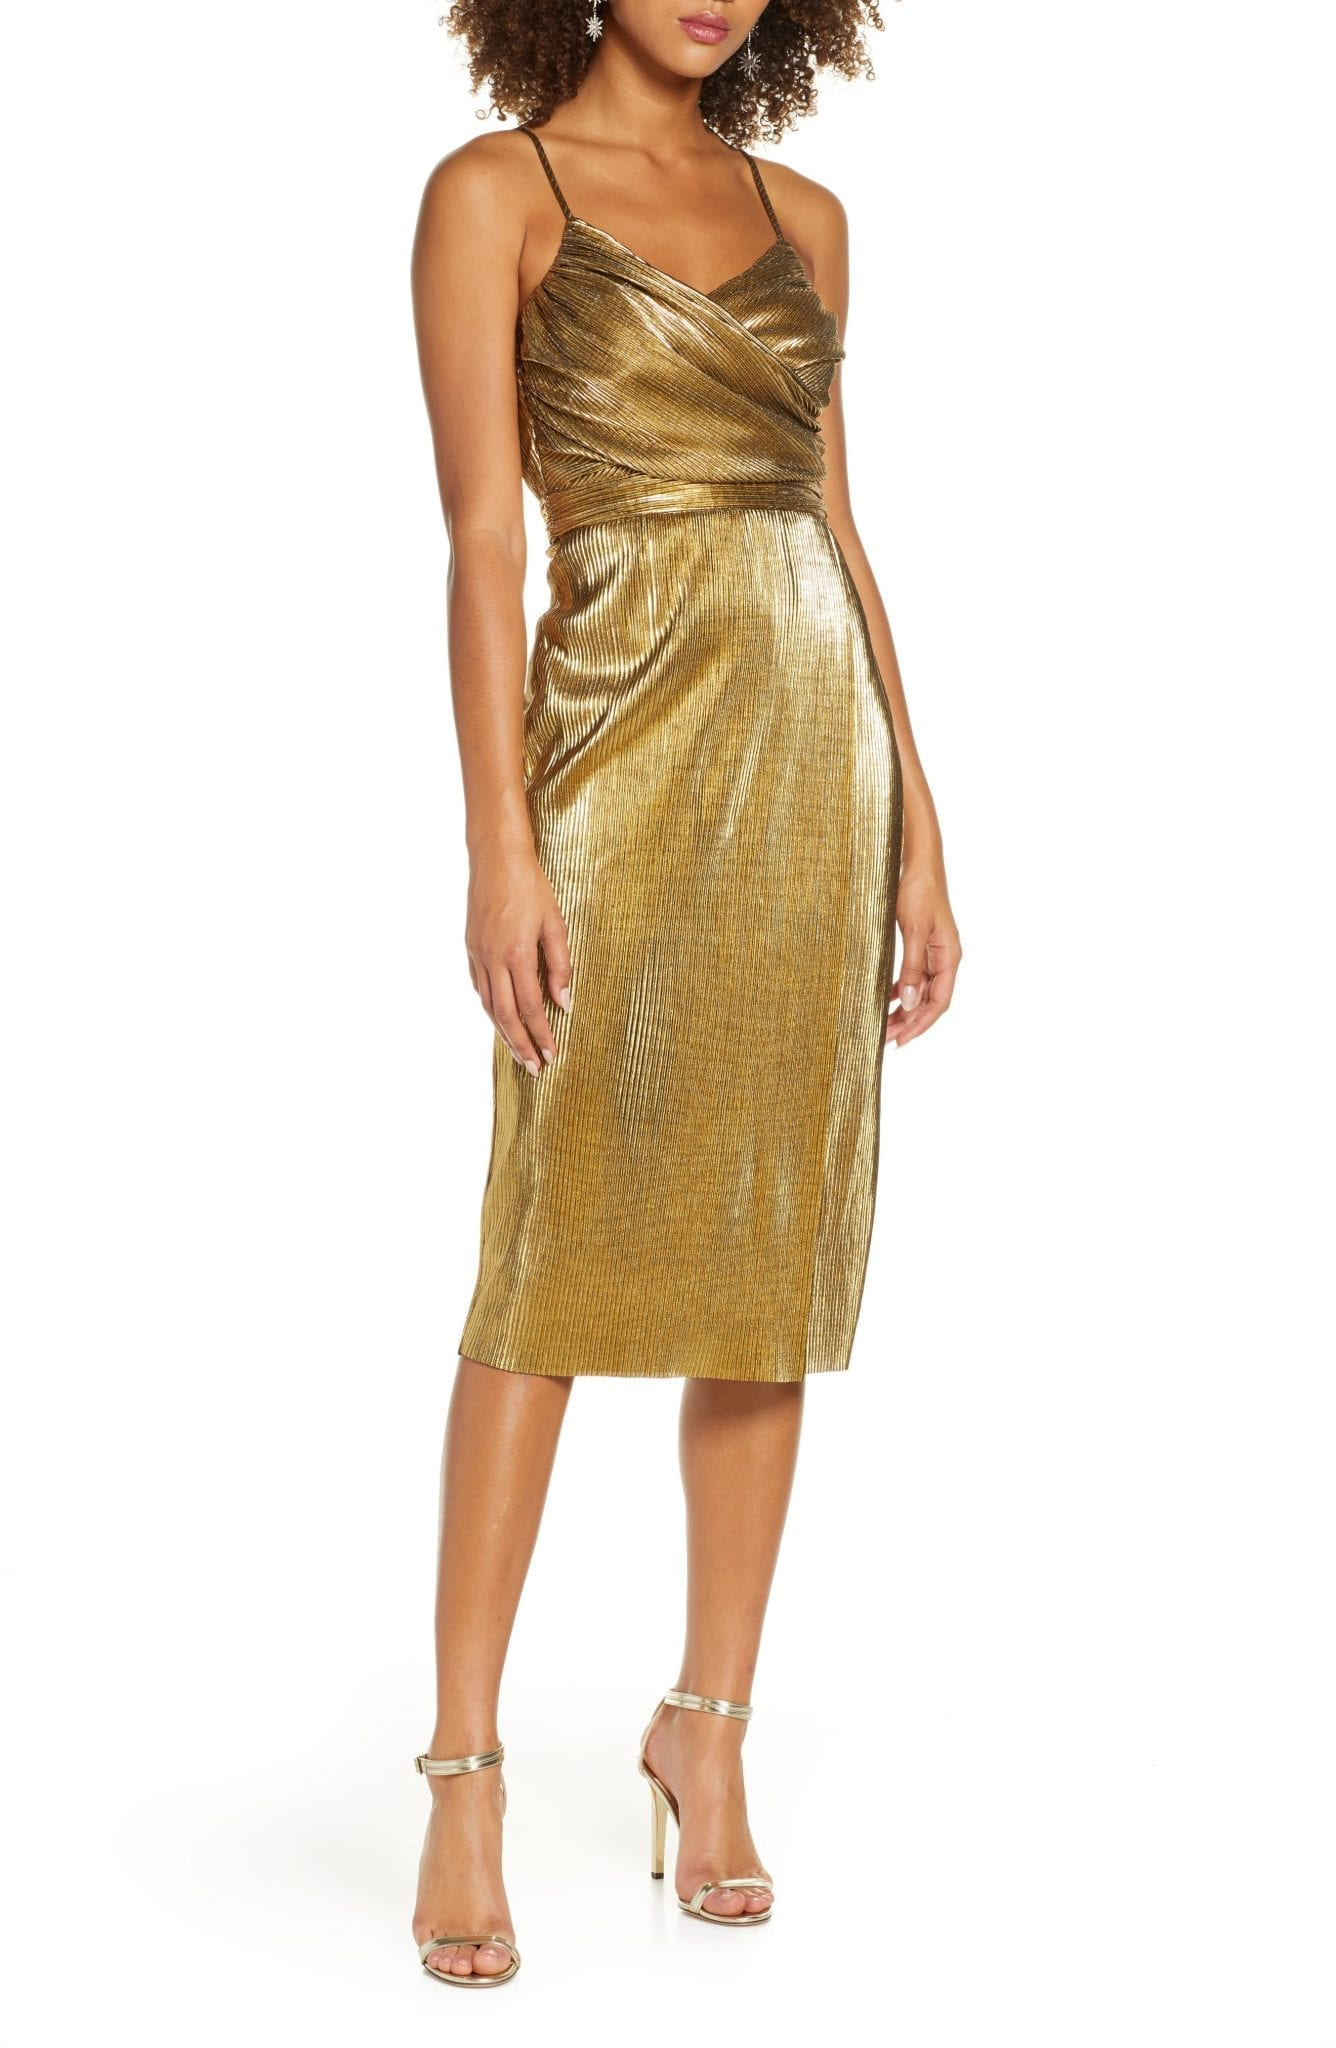 LULUS Love & Luxury Metallic Plissé Cocktail Dress